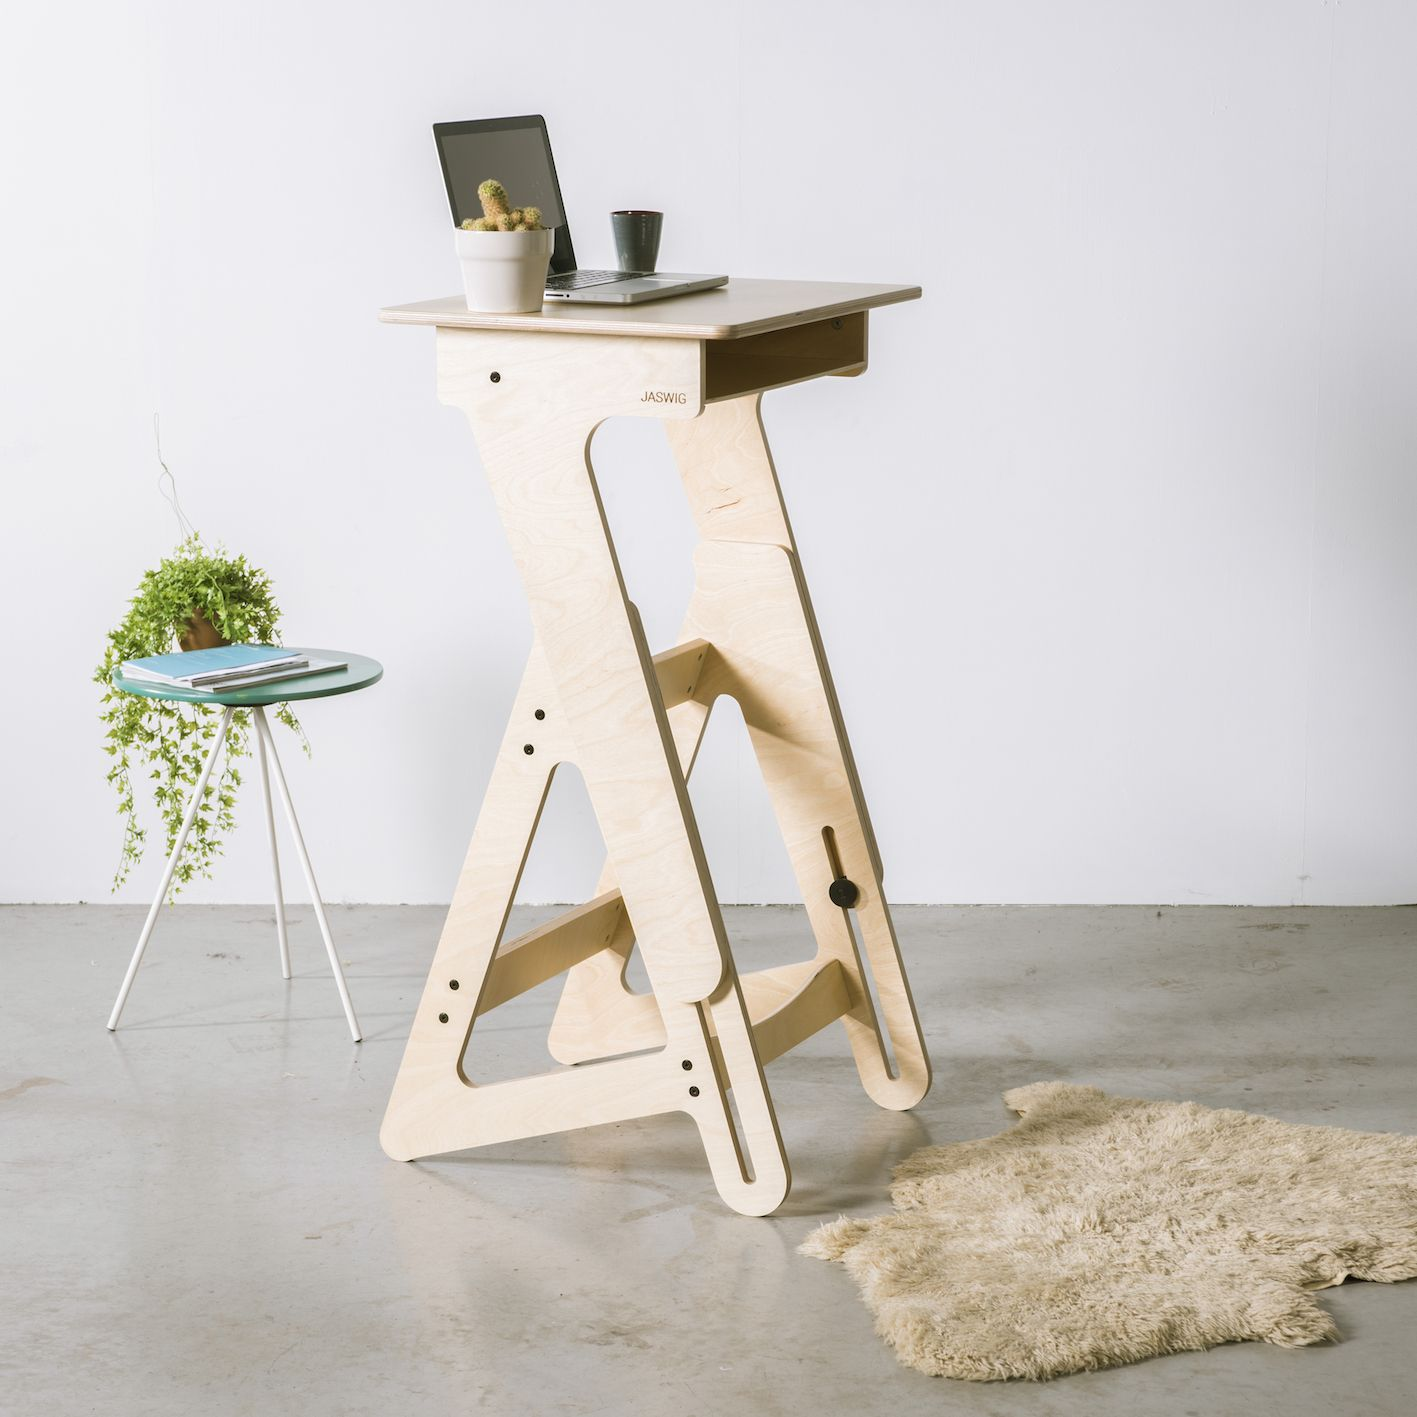 Beautifully designed standing desk that is locally produced with